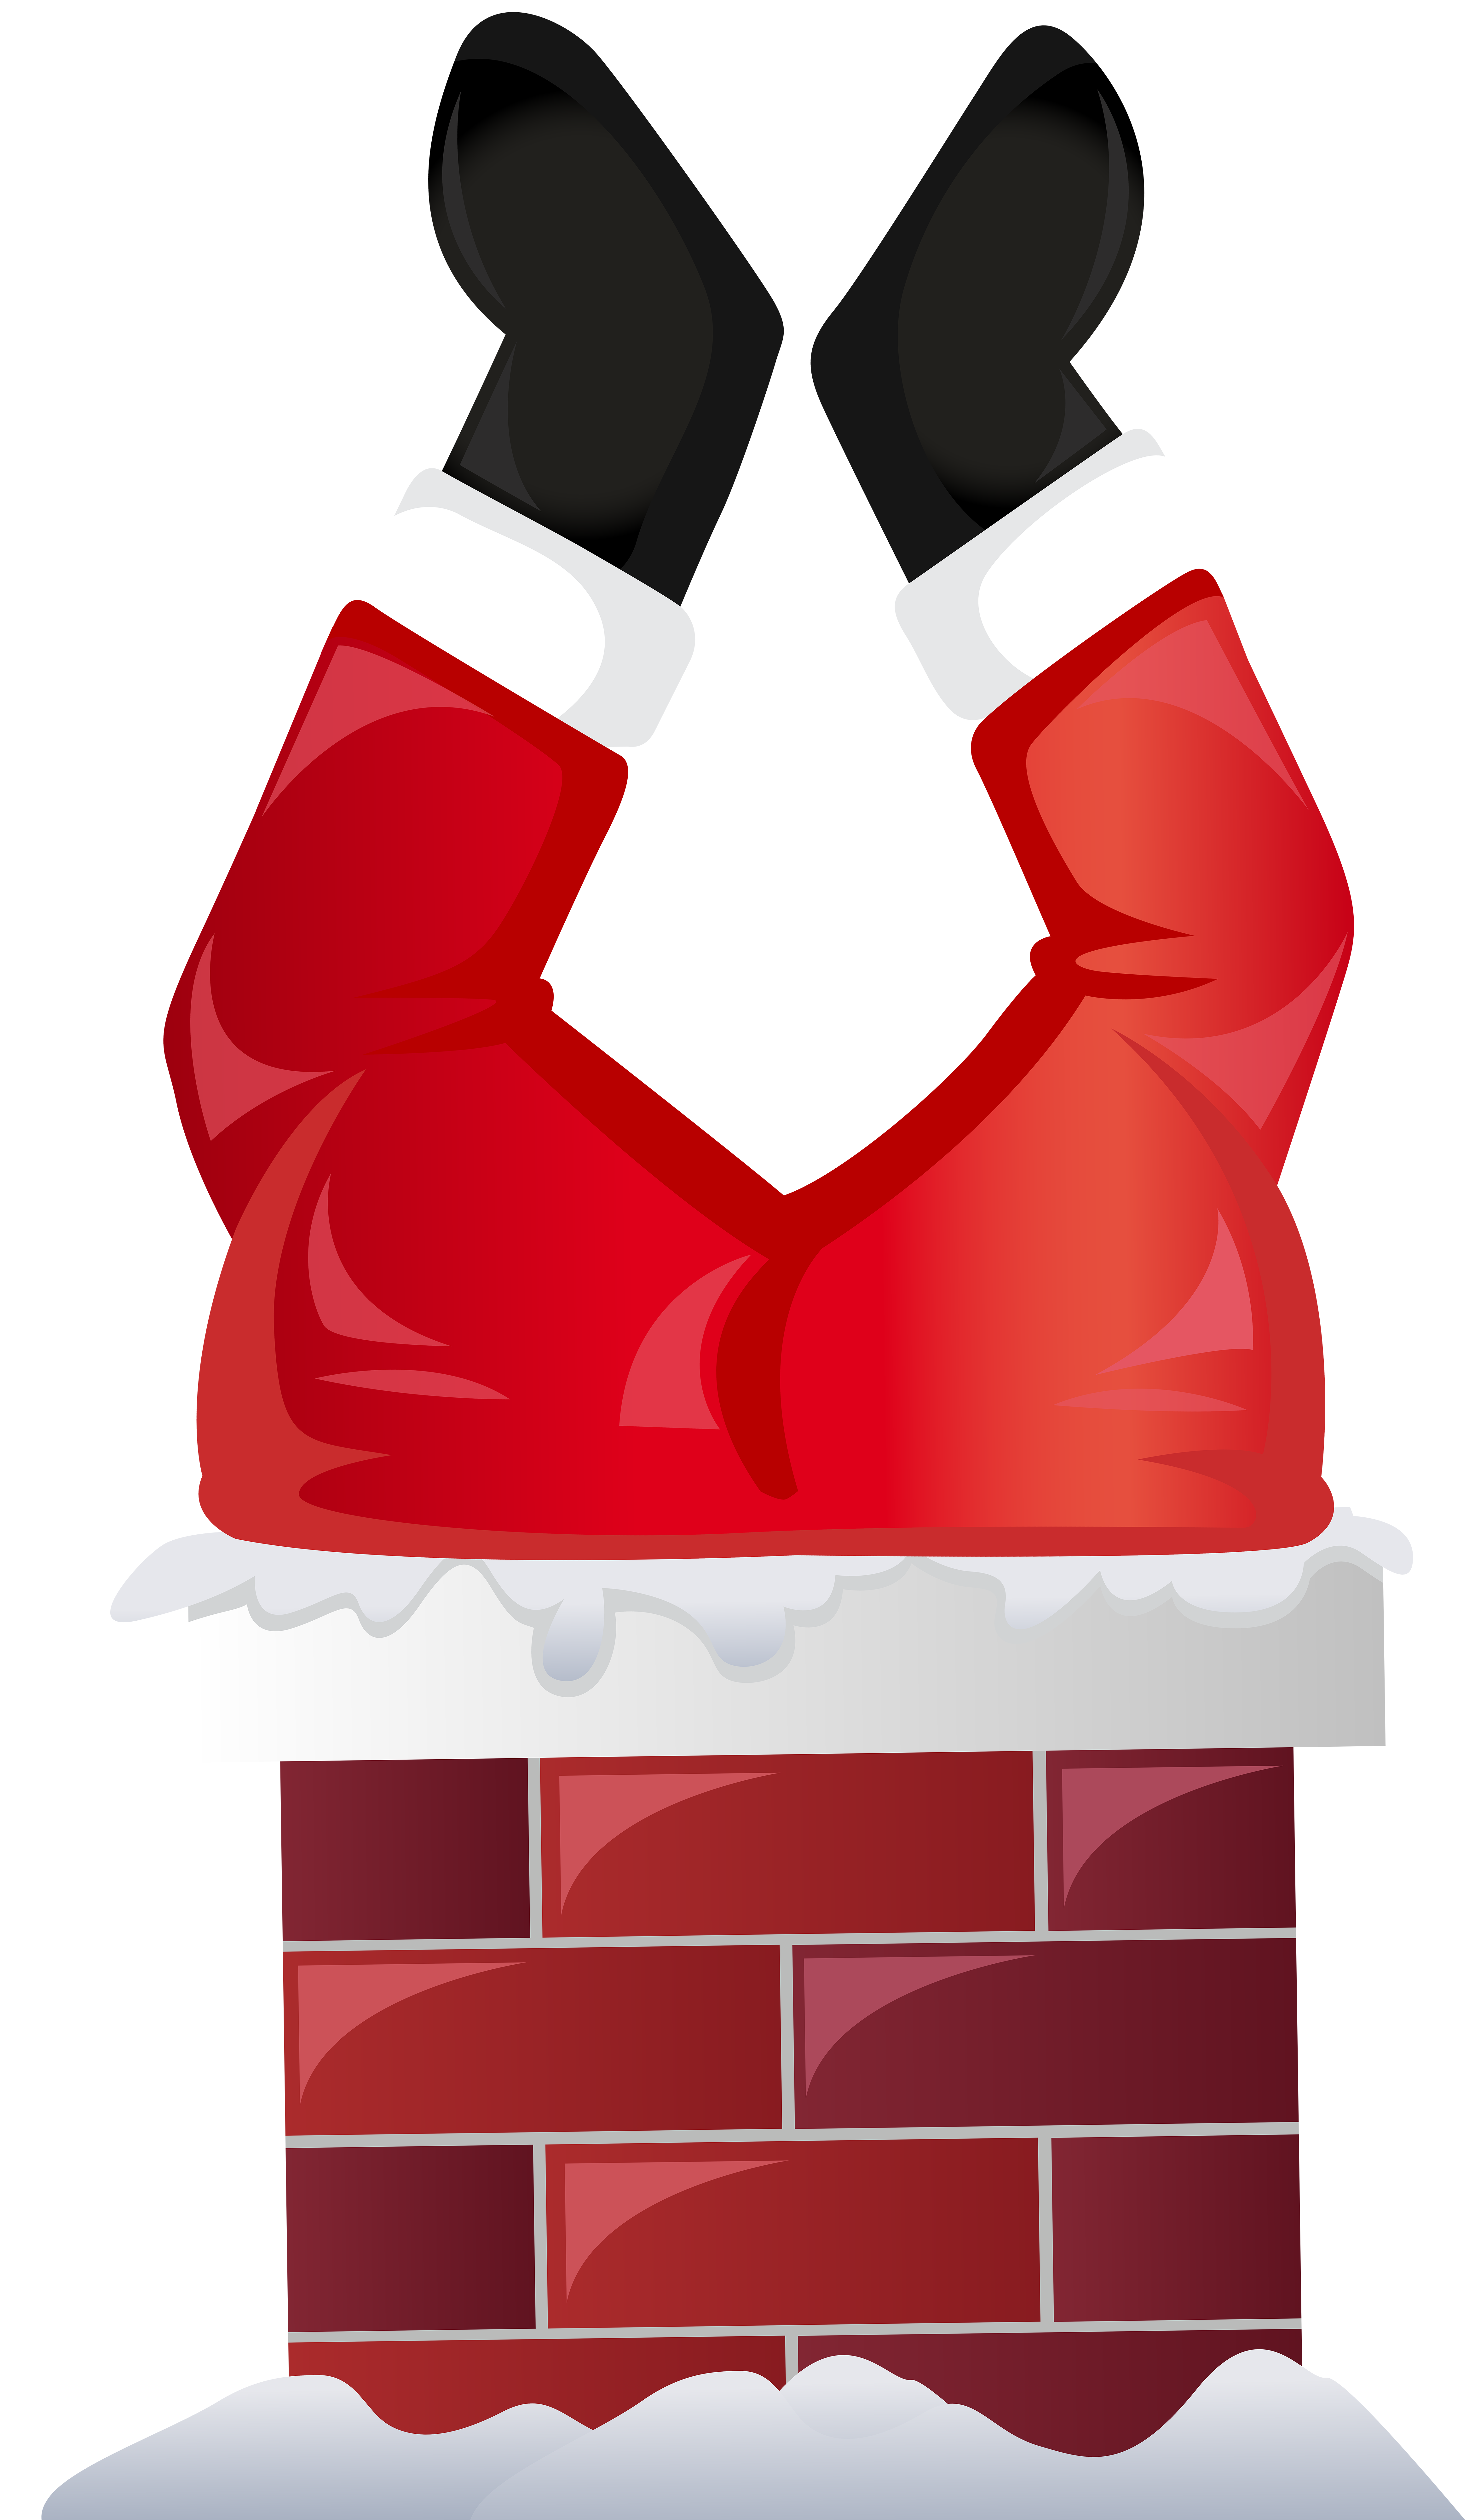 Santa in a car clipart banner freeuse library Funny Santa in Chimney Transparent PNG Clip Art | Gallery ... banner freeuse library